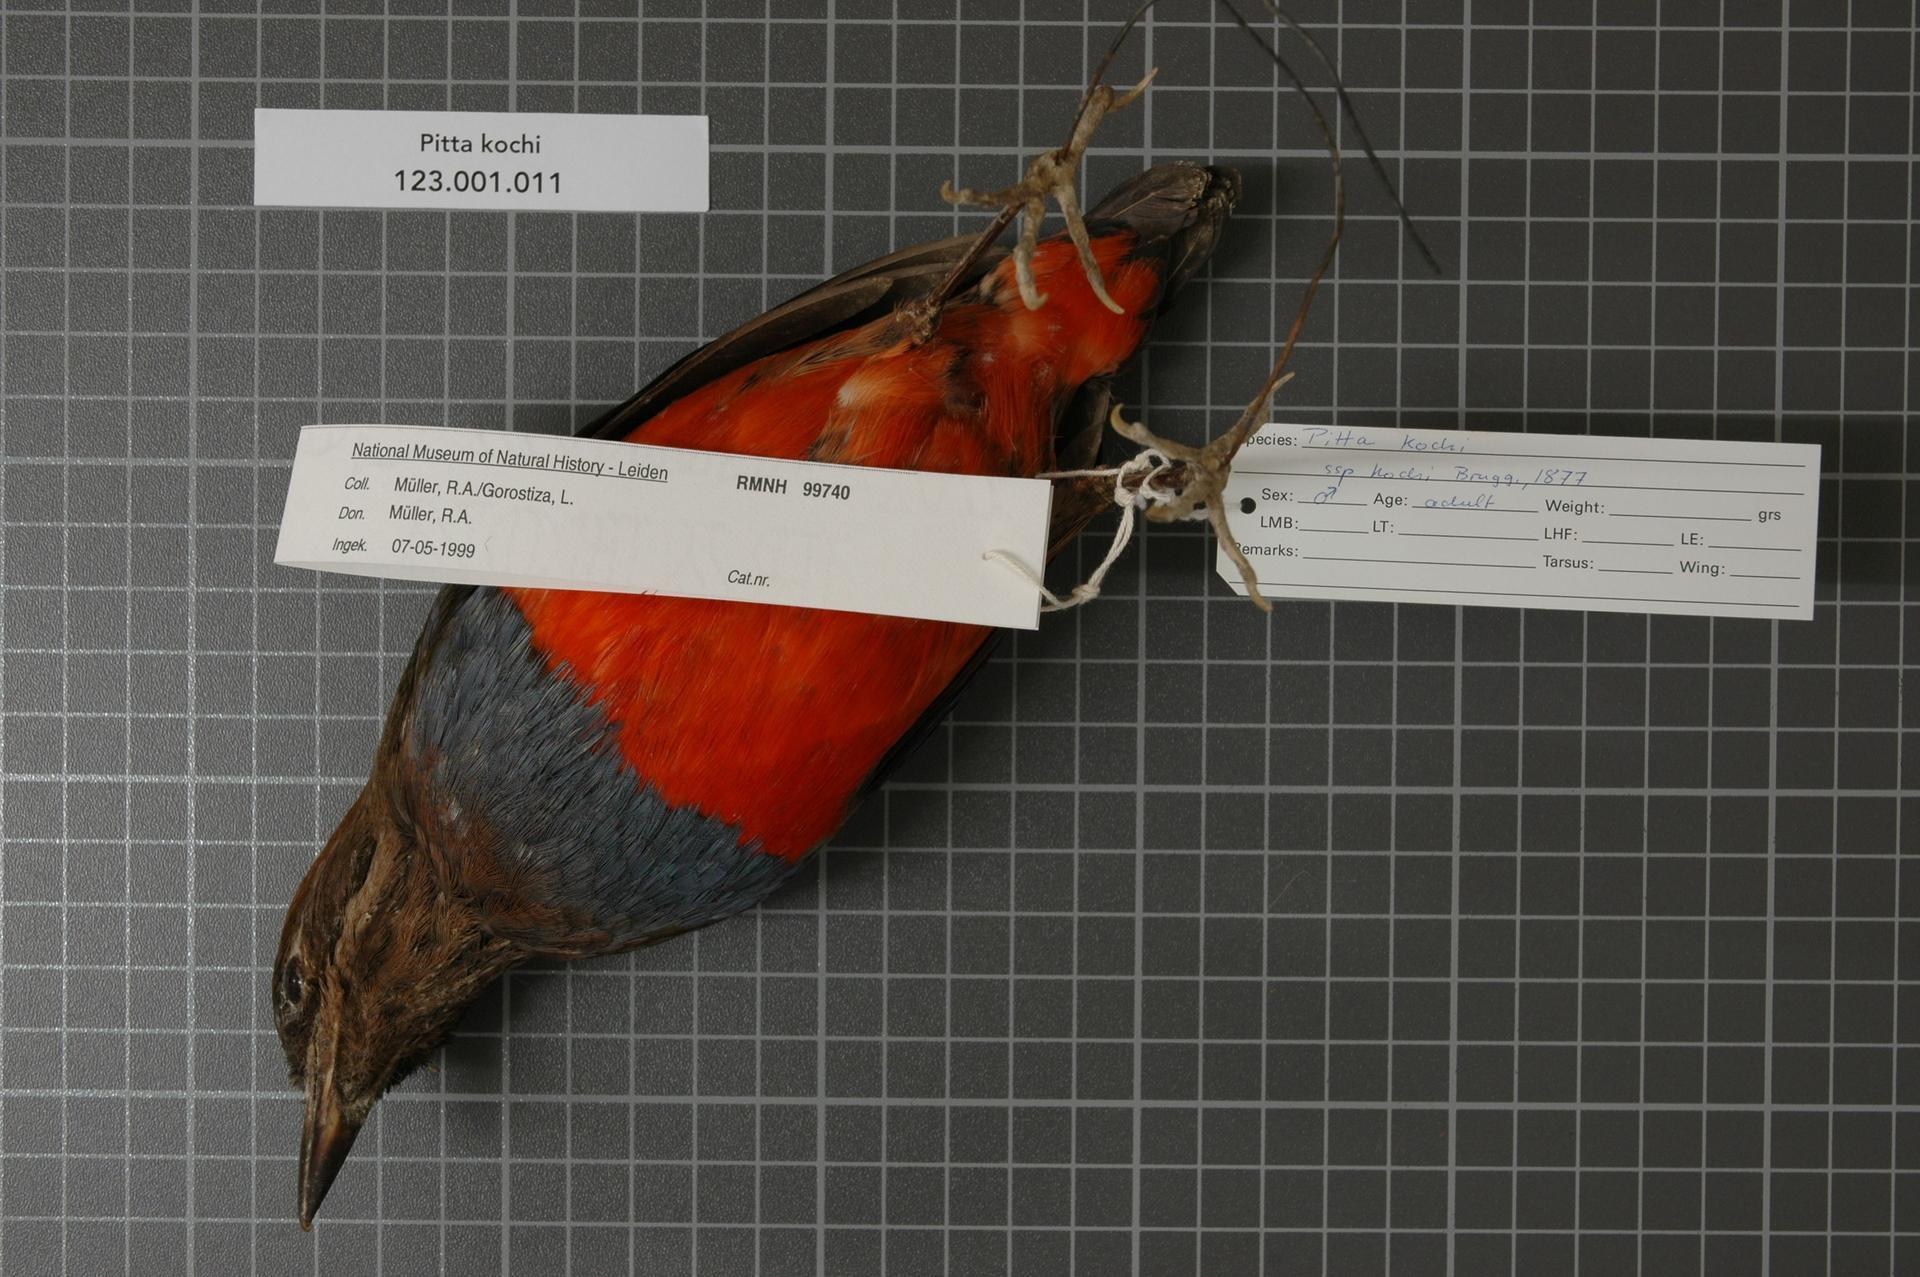 Image of Whiskered Pitta